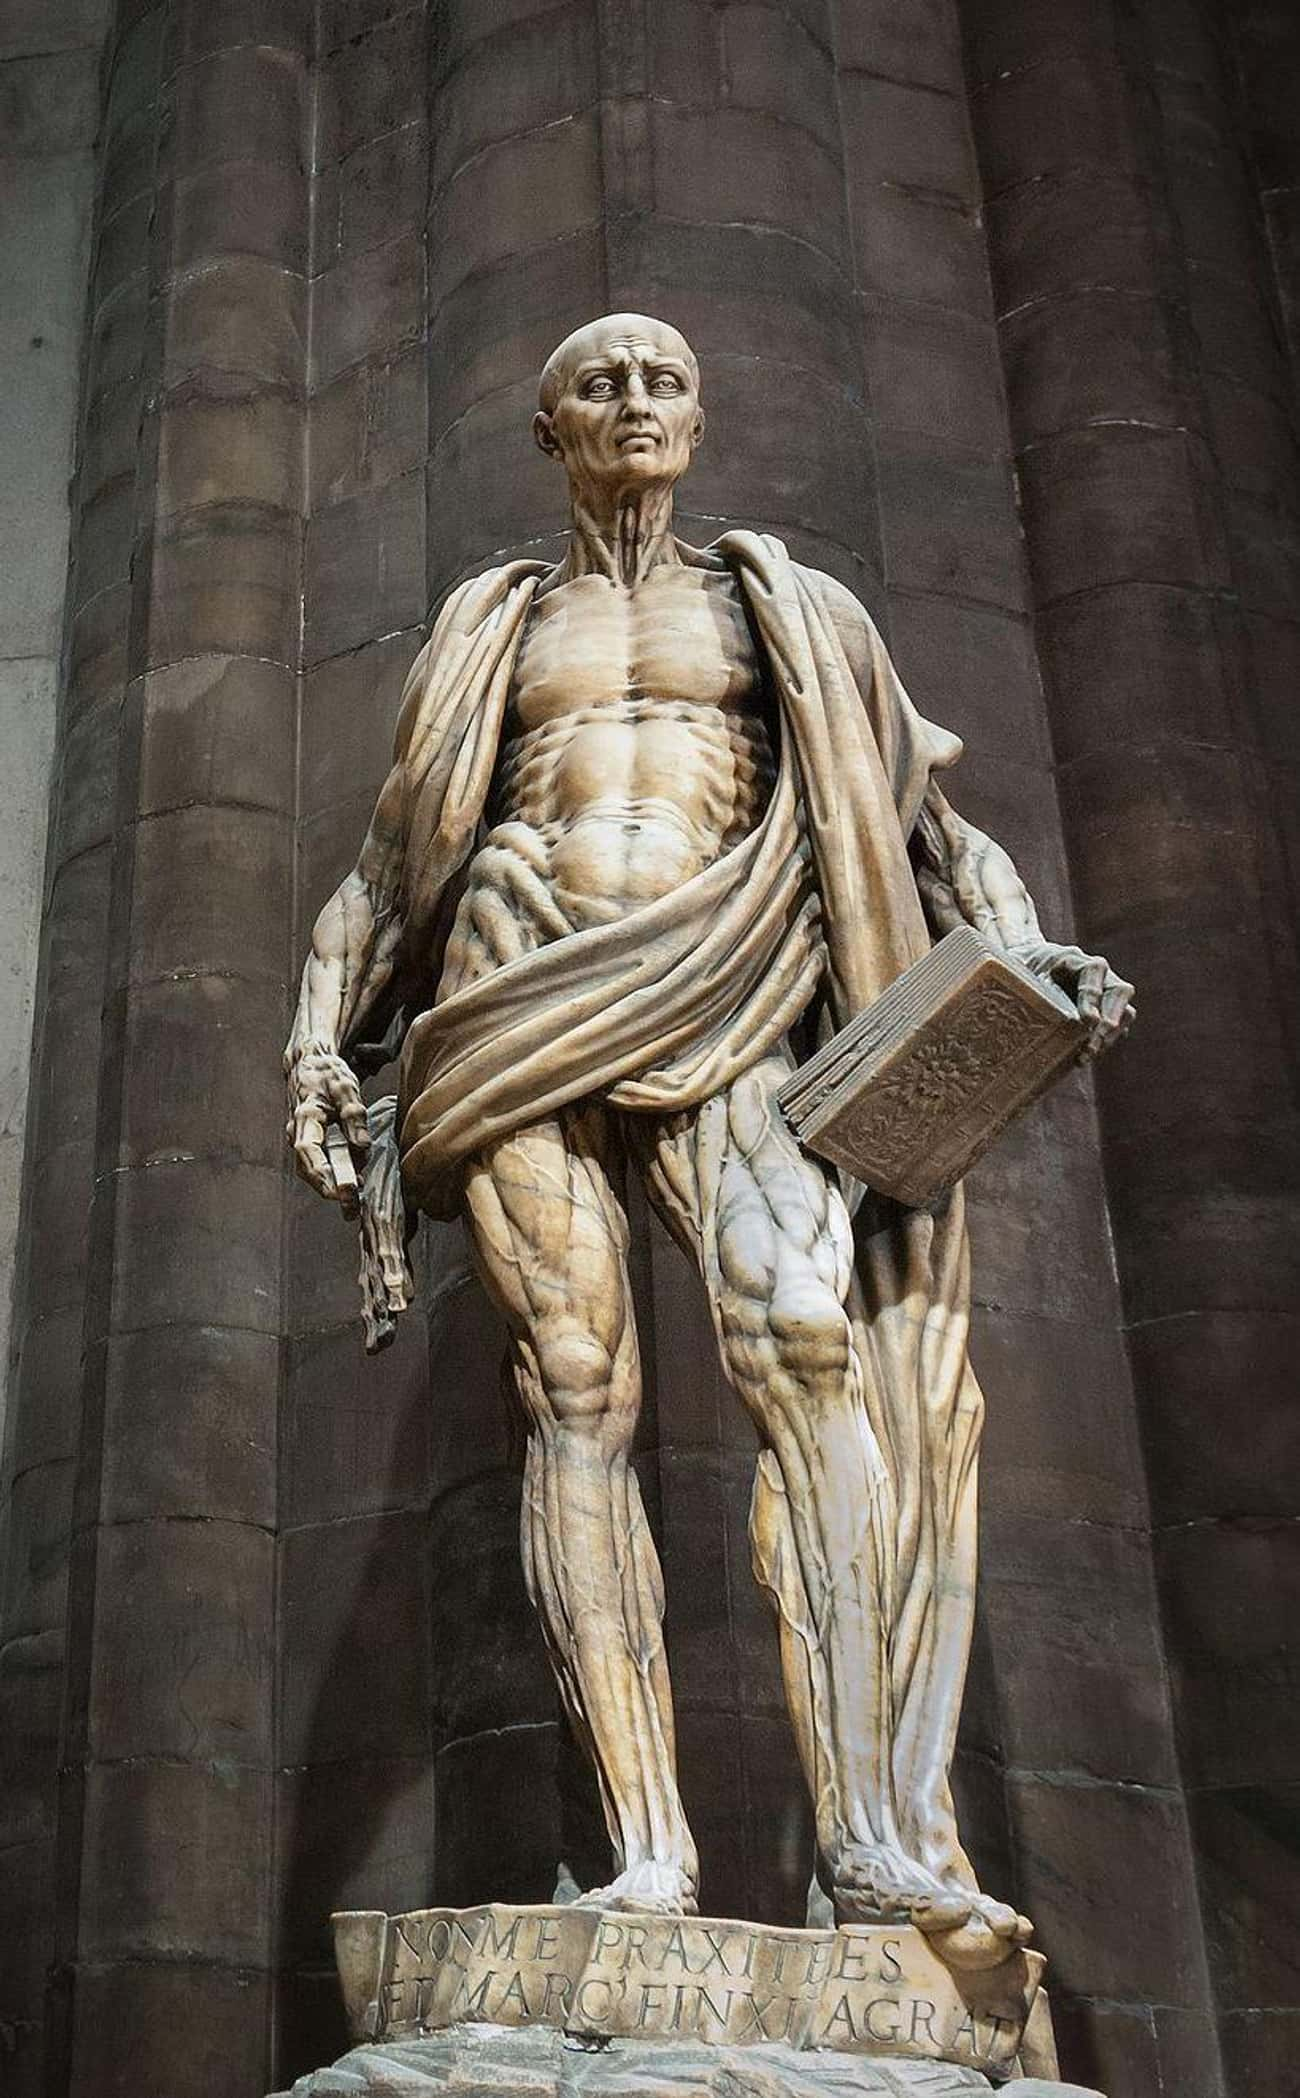 St. Bartholomew's Statue Is Draped In His Own Skin Because He Was Flayed Alive